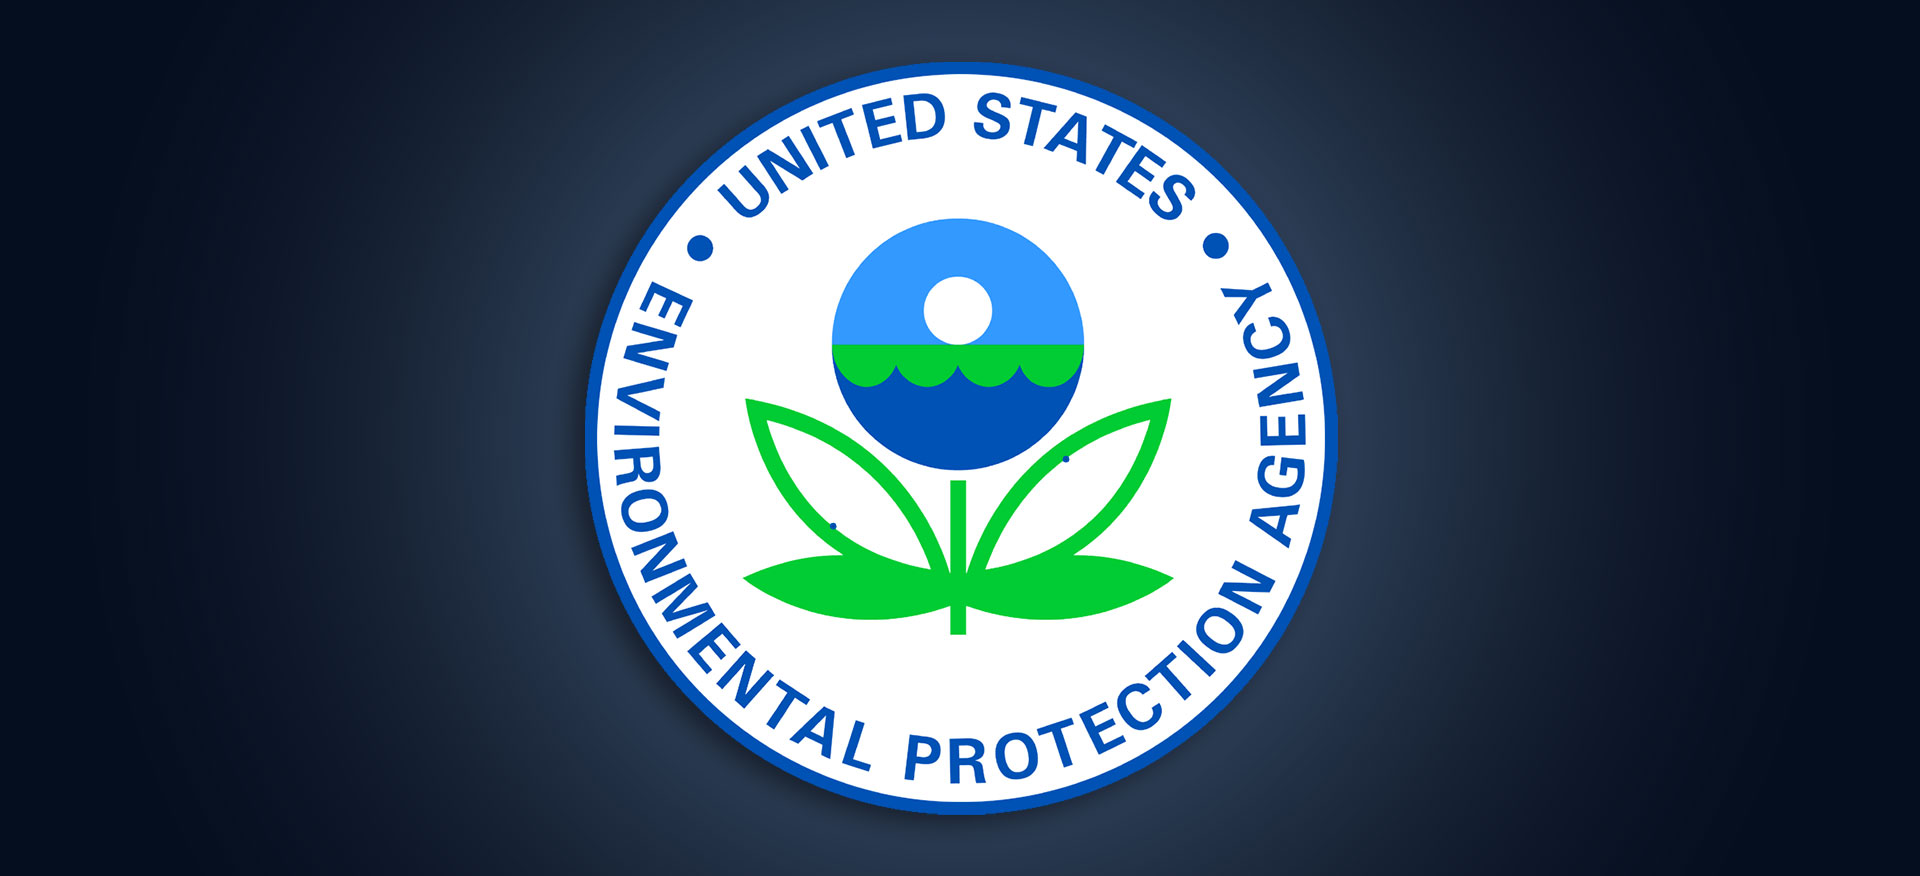 cancer and environmental protection agency The environmental protection agency frequently puts mandatory controls on toxic substances that present as little risk as one in a million chances to cause cancer .